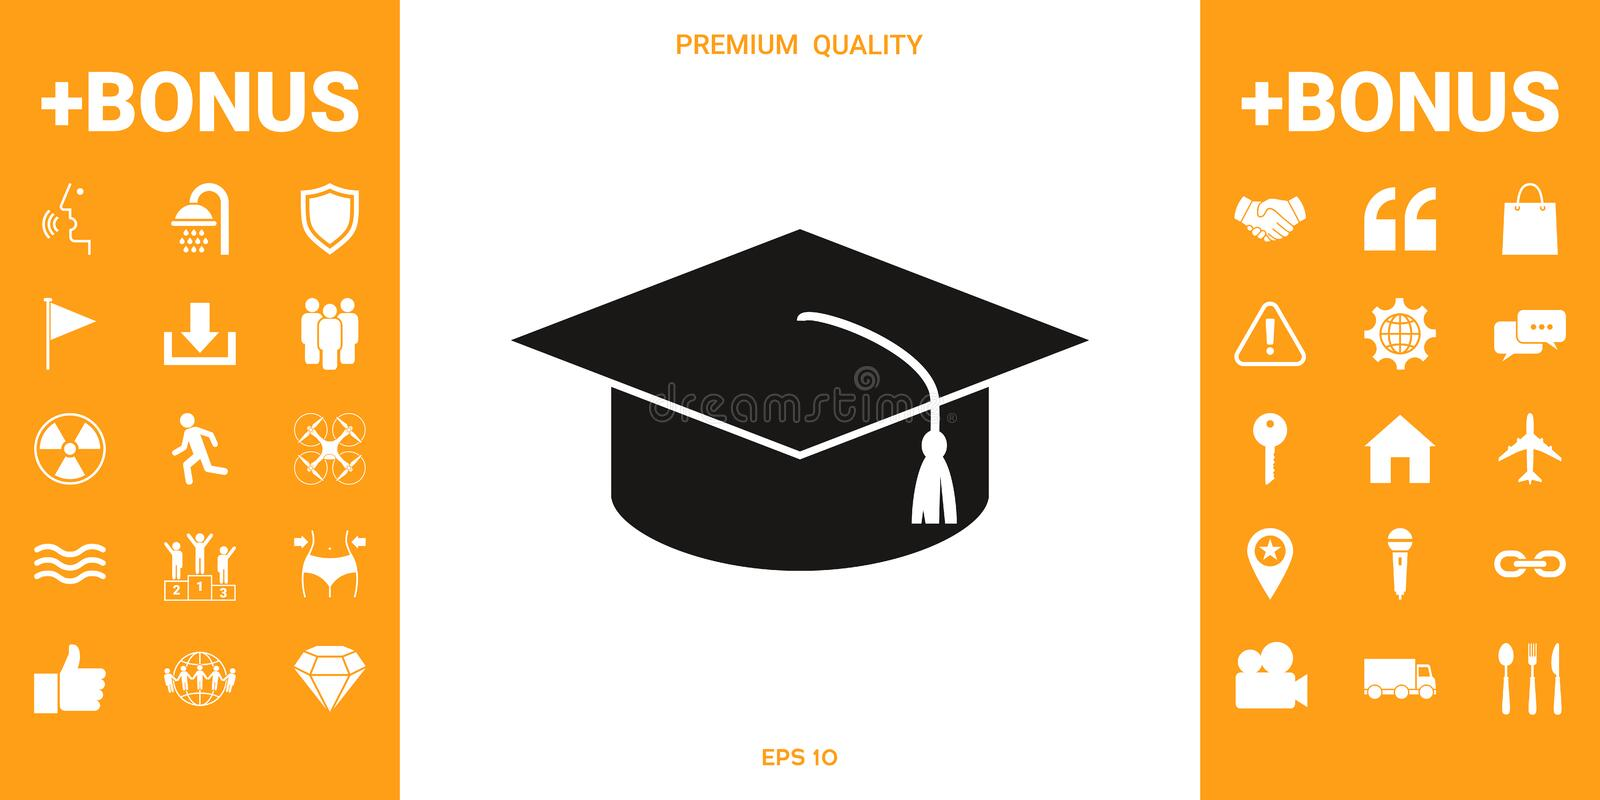 Master cap for graduates, square academic cap, graduation cap icon stock illustration